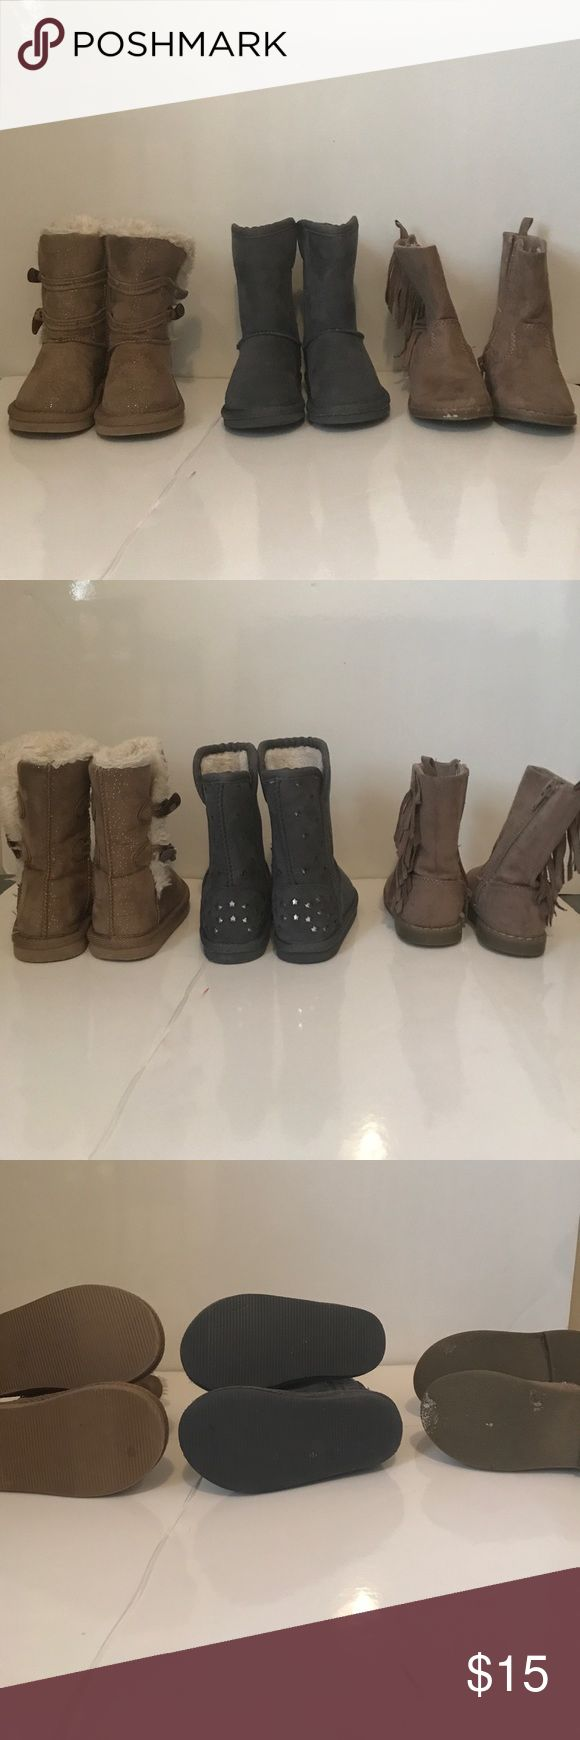 Toddler Girl Boots 3 pairs of gently worn toddler girl boots Old Navy Shoes Boots